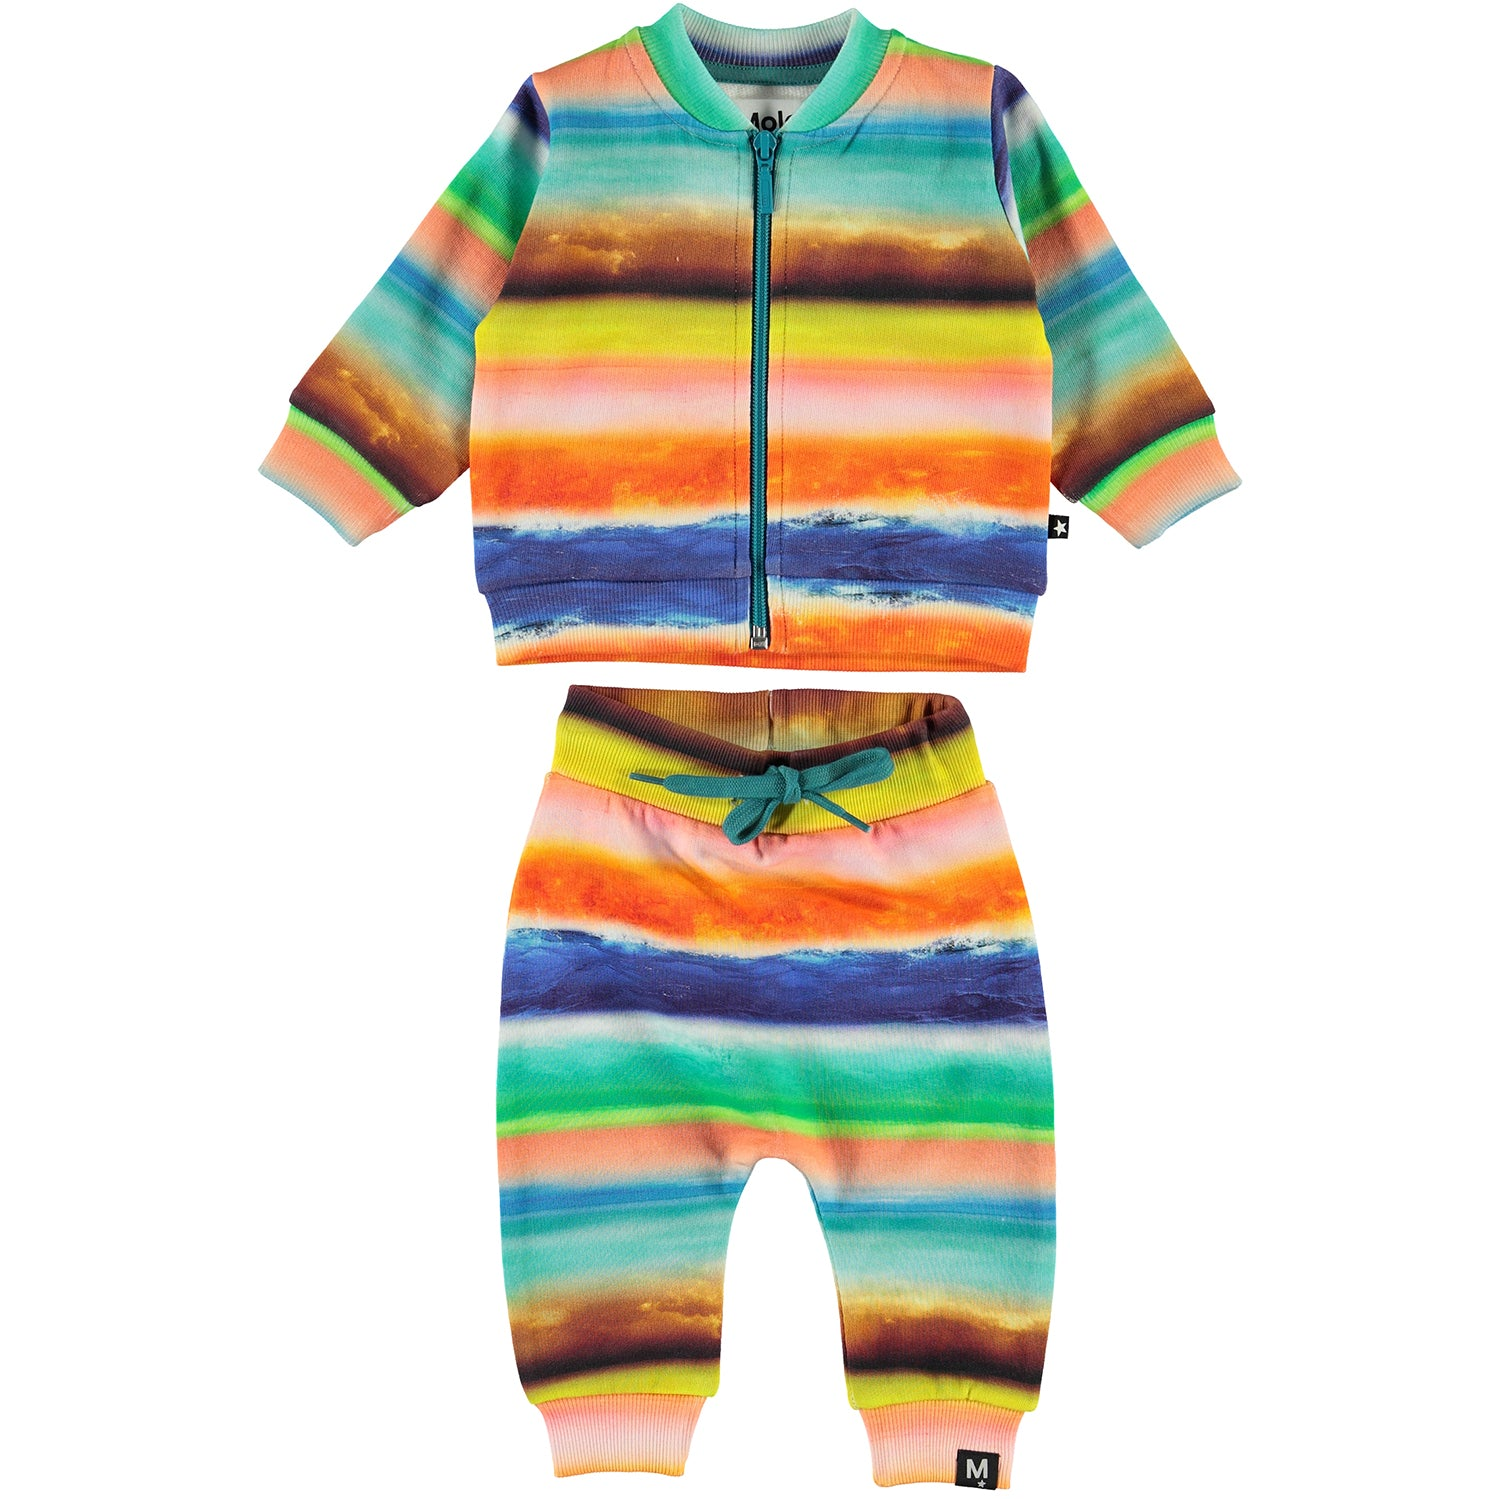 yoya, kids, baby, boys, girls, molo, summer, lightweight, casual, graphic printed, zip front, sweatshirt, pull on, drawstring, sweat pants, outfit set